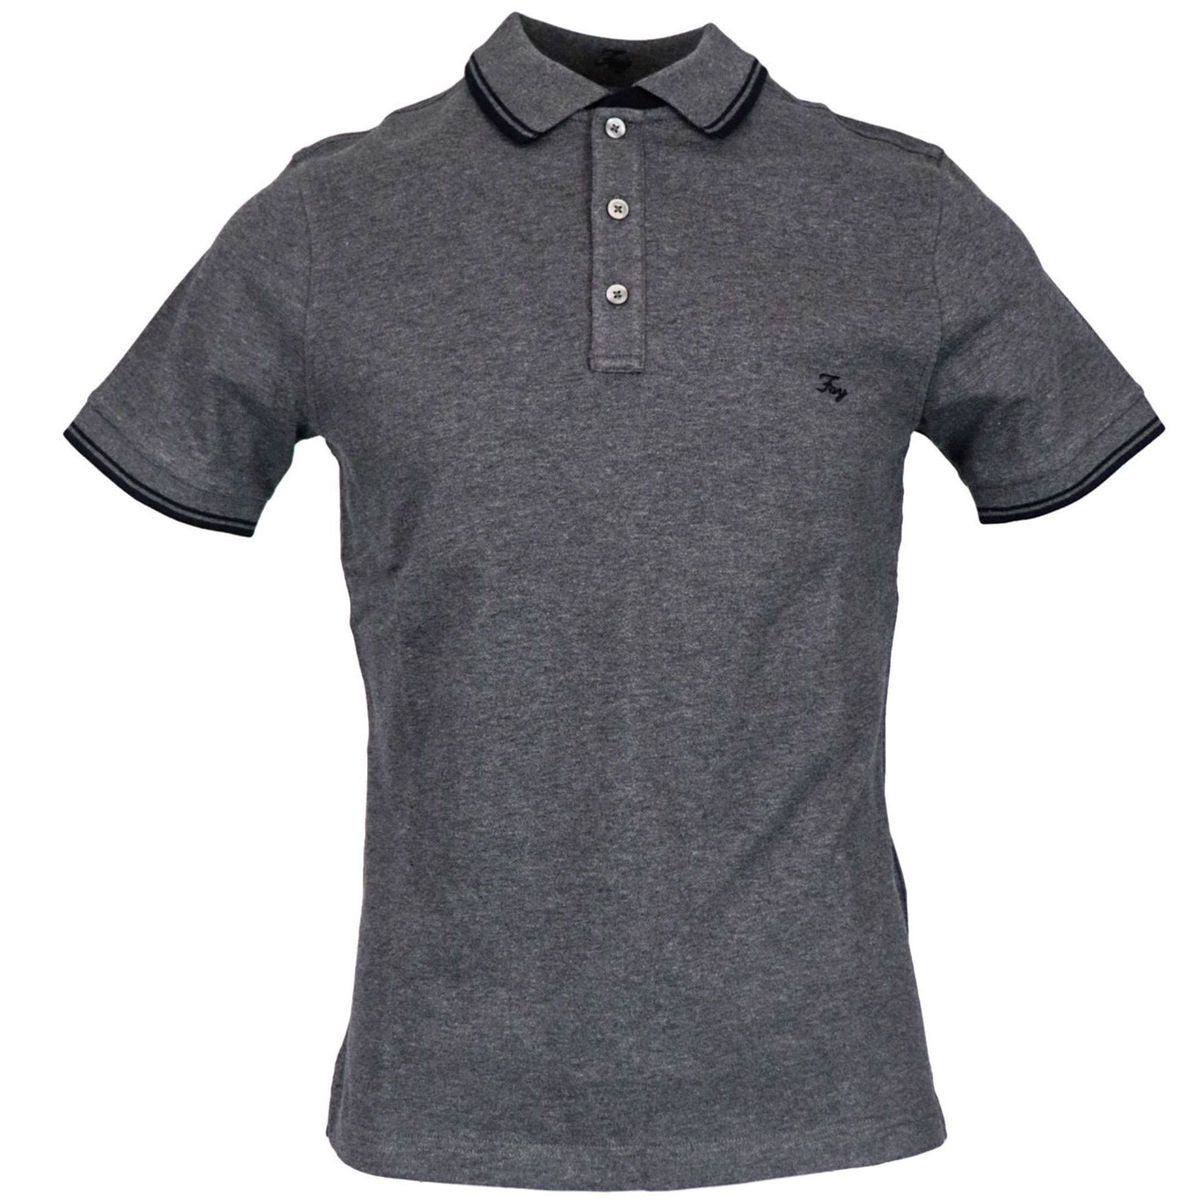 Three button stretch cotton polo shirt with logo embroidery Dark gray Fay